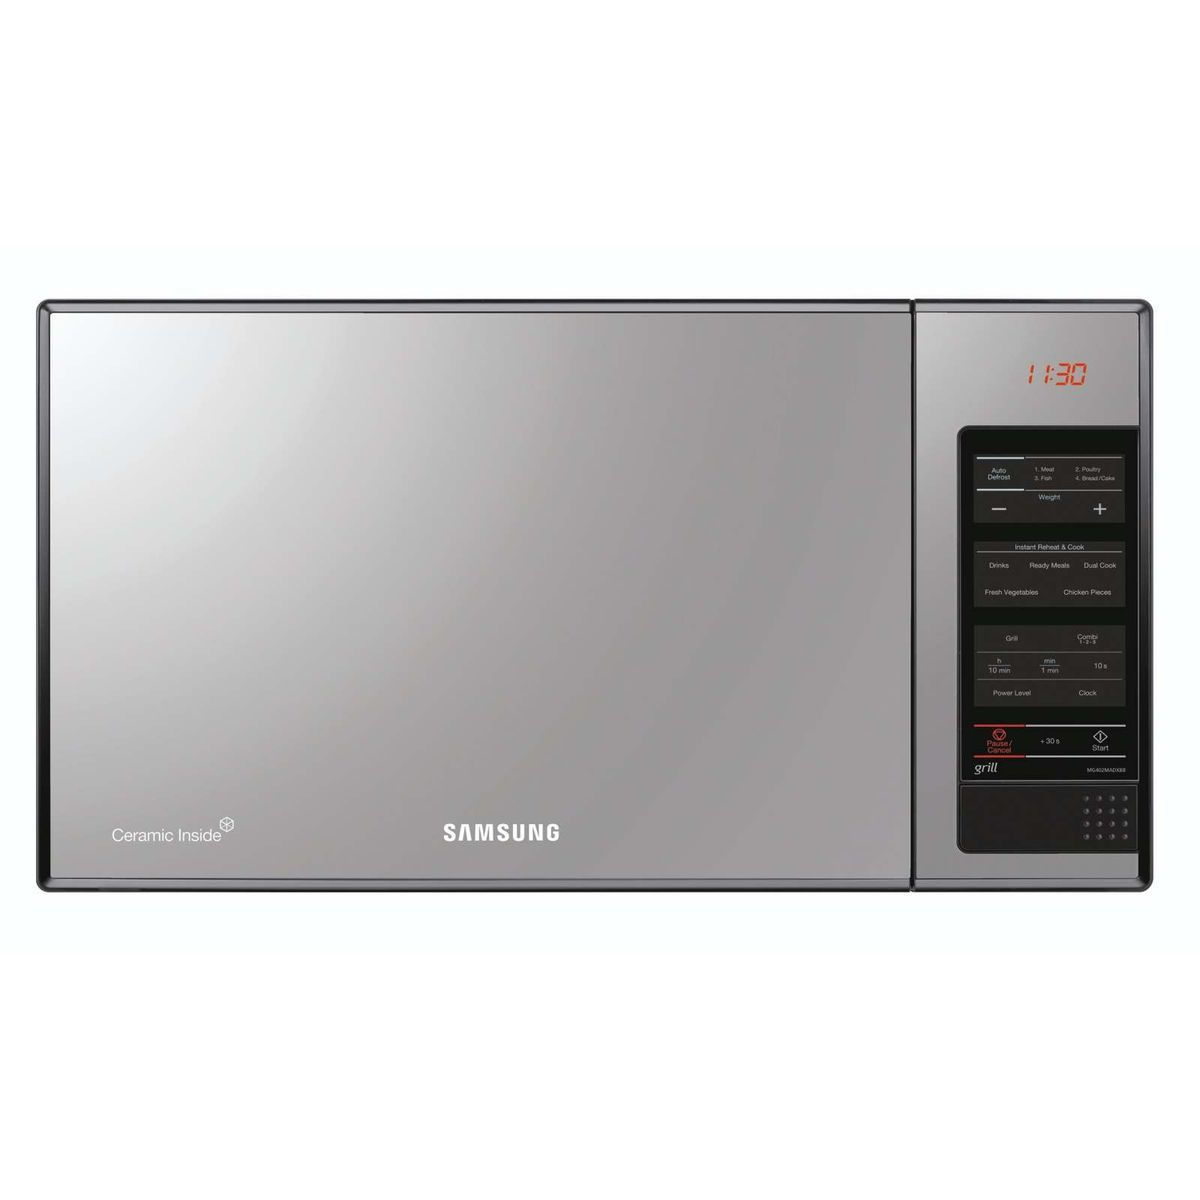 Samsung 40 Litre Mirror Finish Microwave Oven Black Loading Zoom